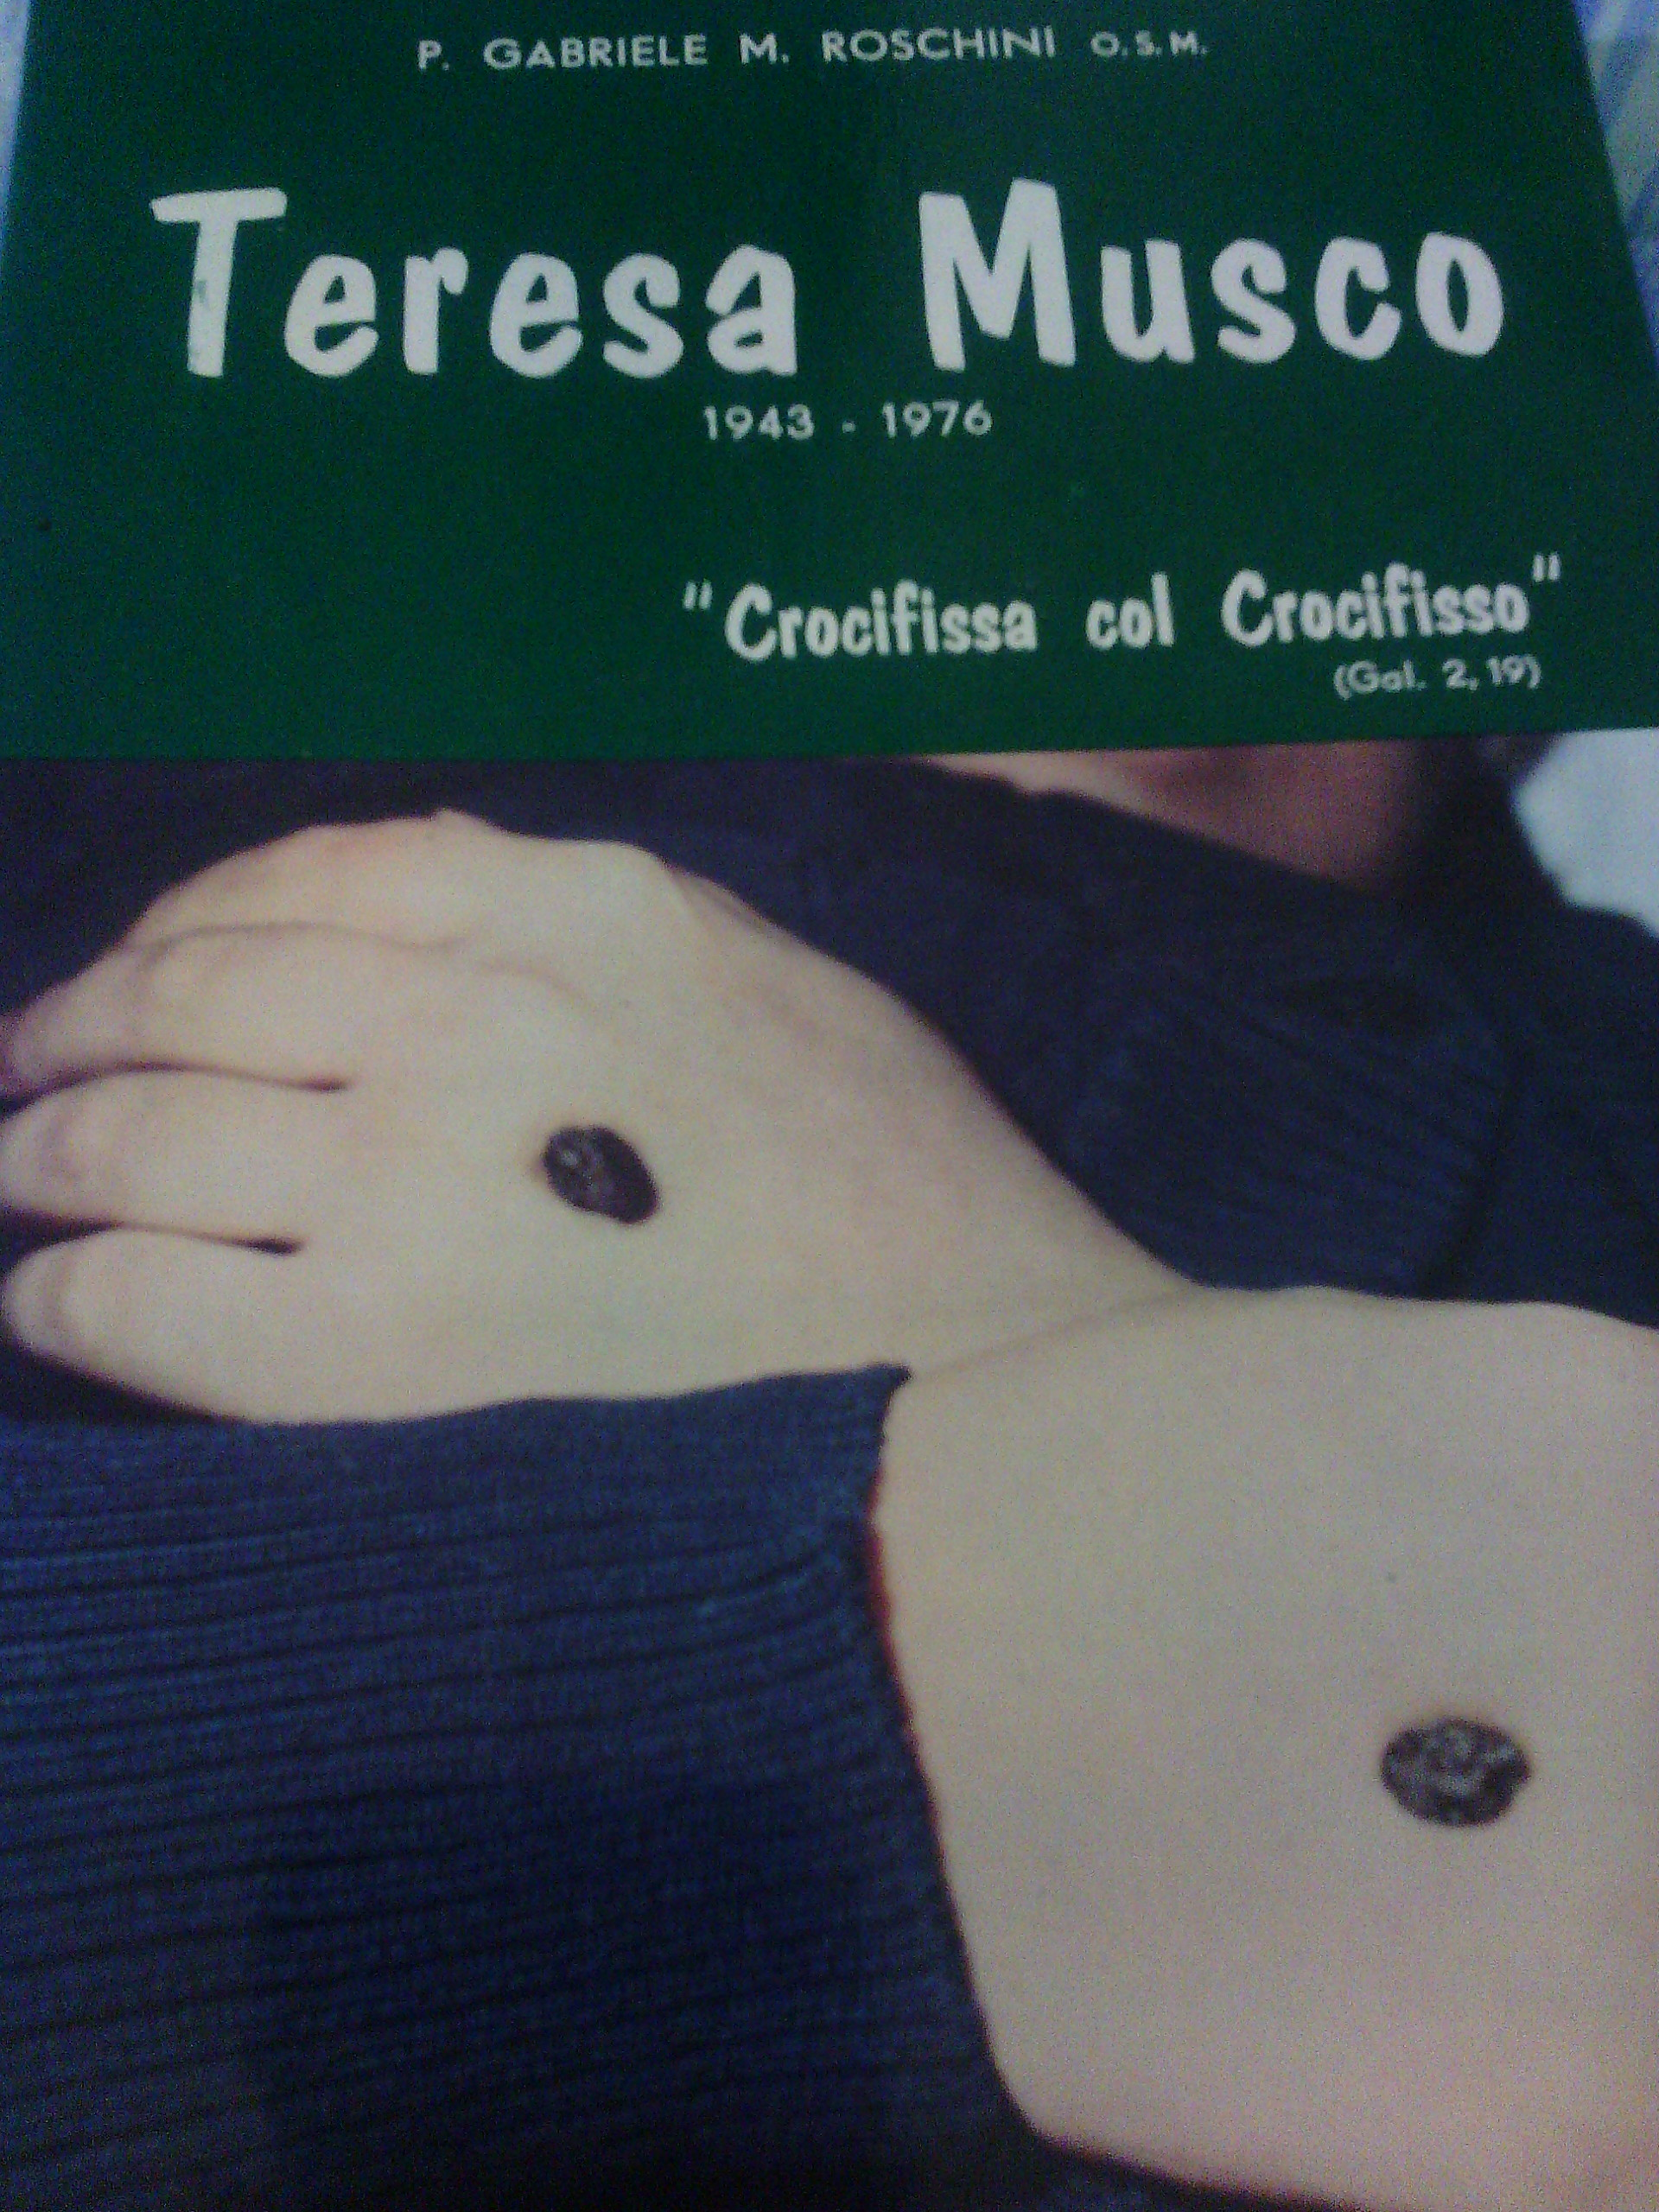 Teresa Musco 1943 -1976: crocifissa col crocifisso